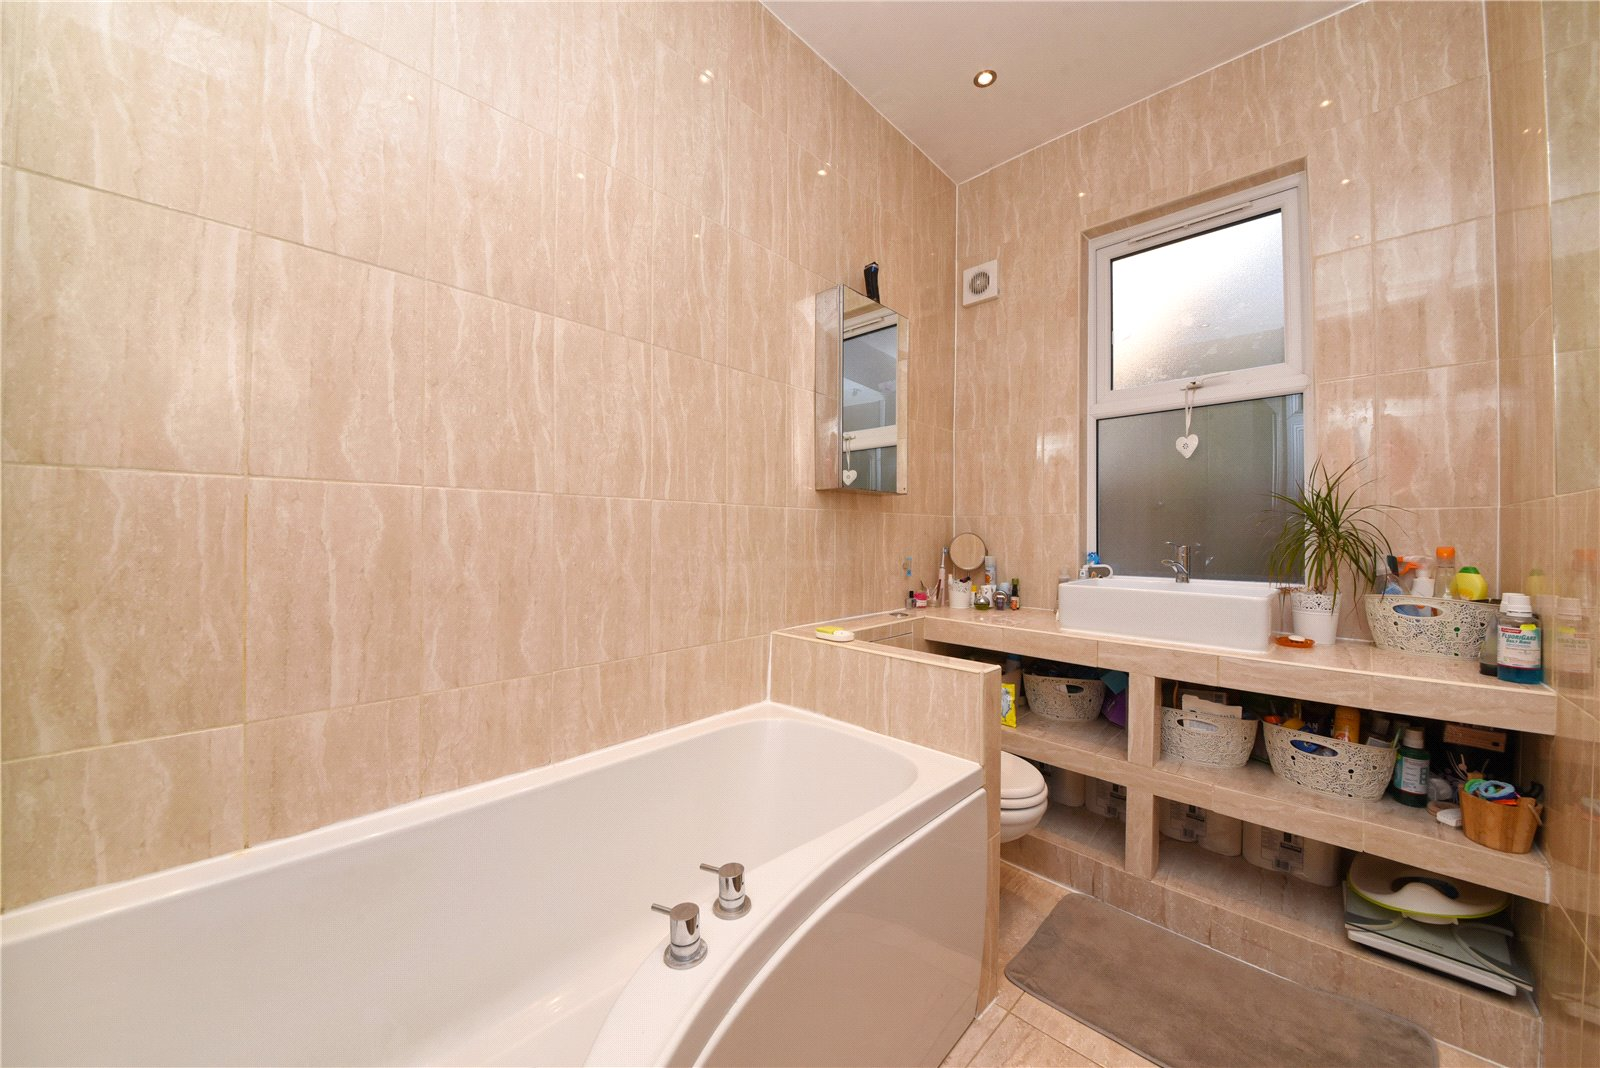 2 bed apartment for sale in East Finchley, N2 0SX 6